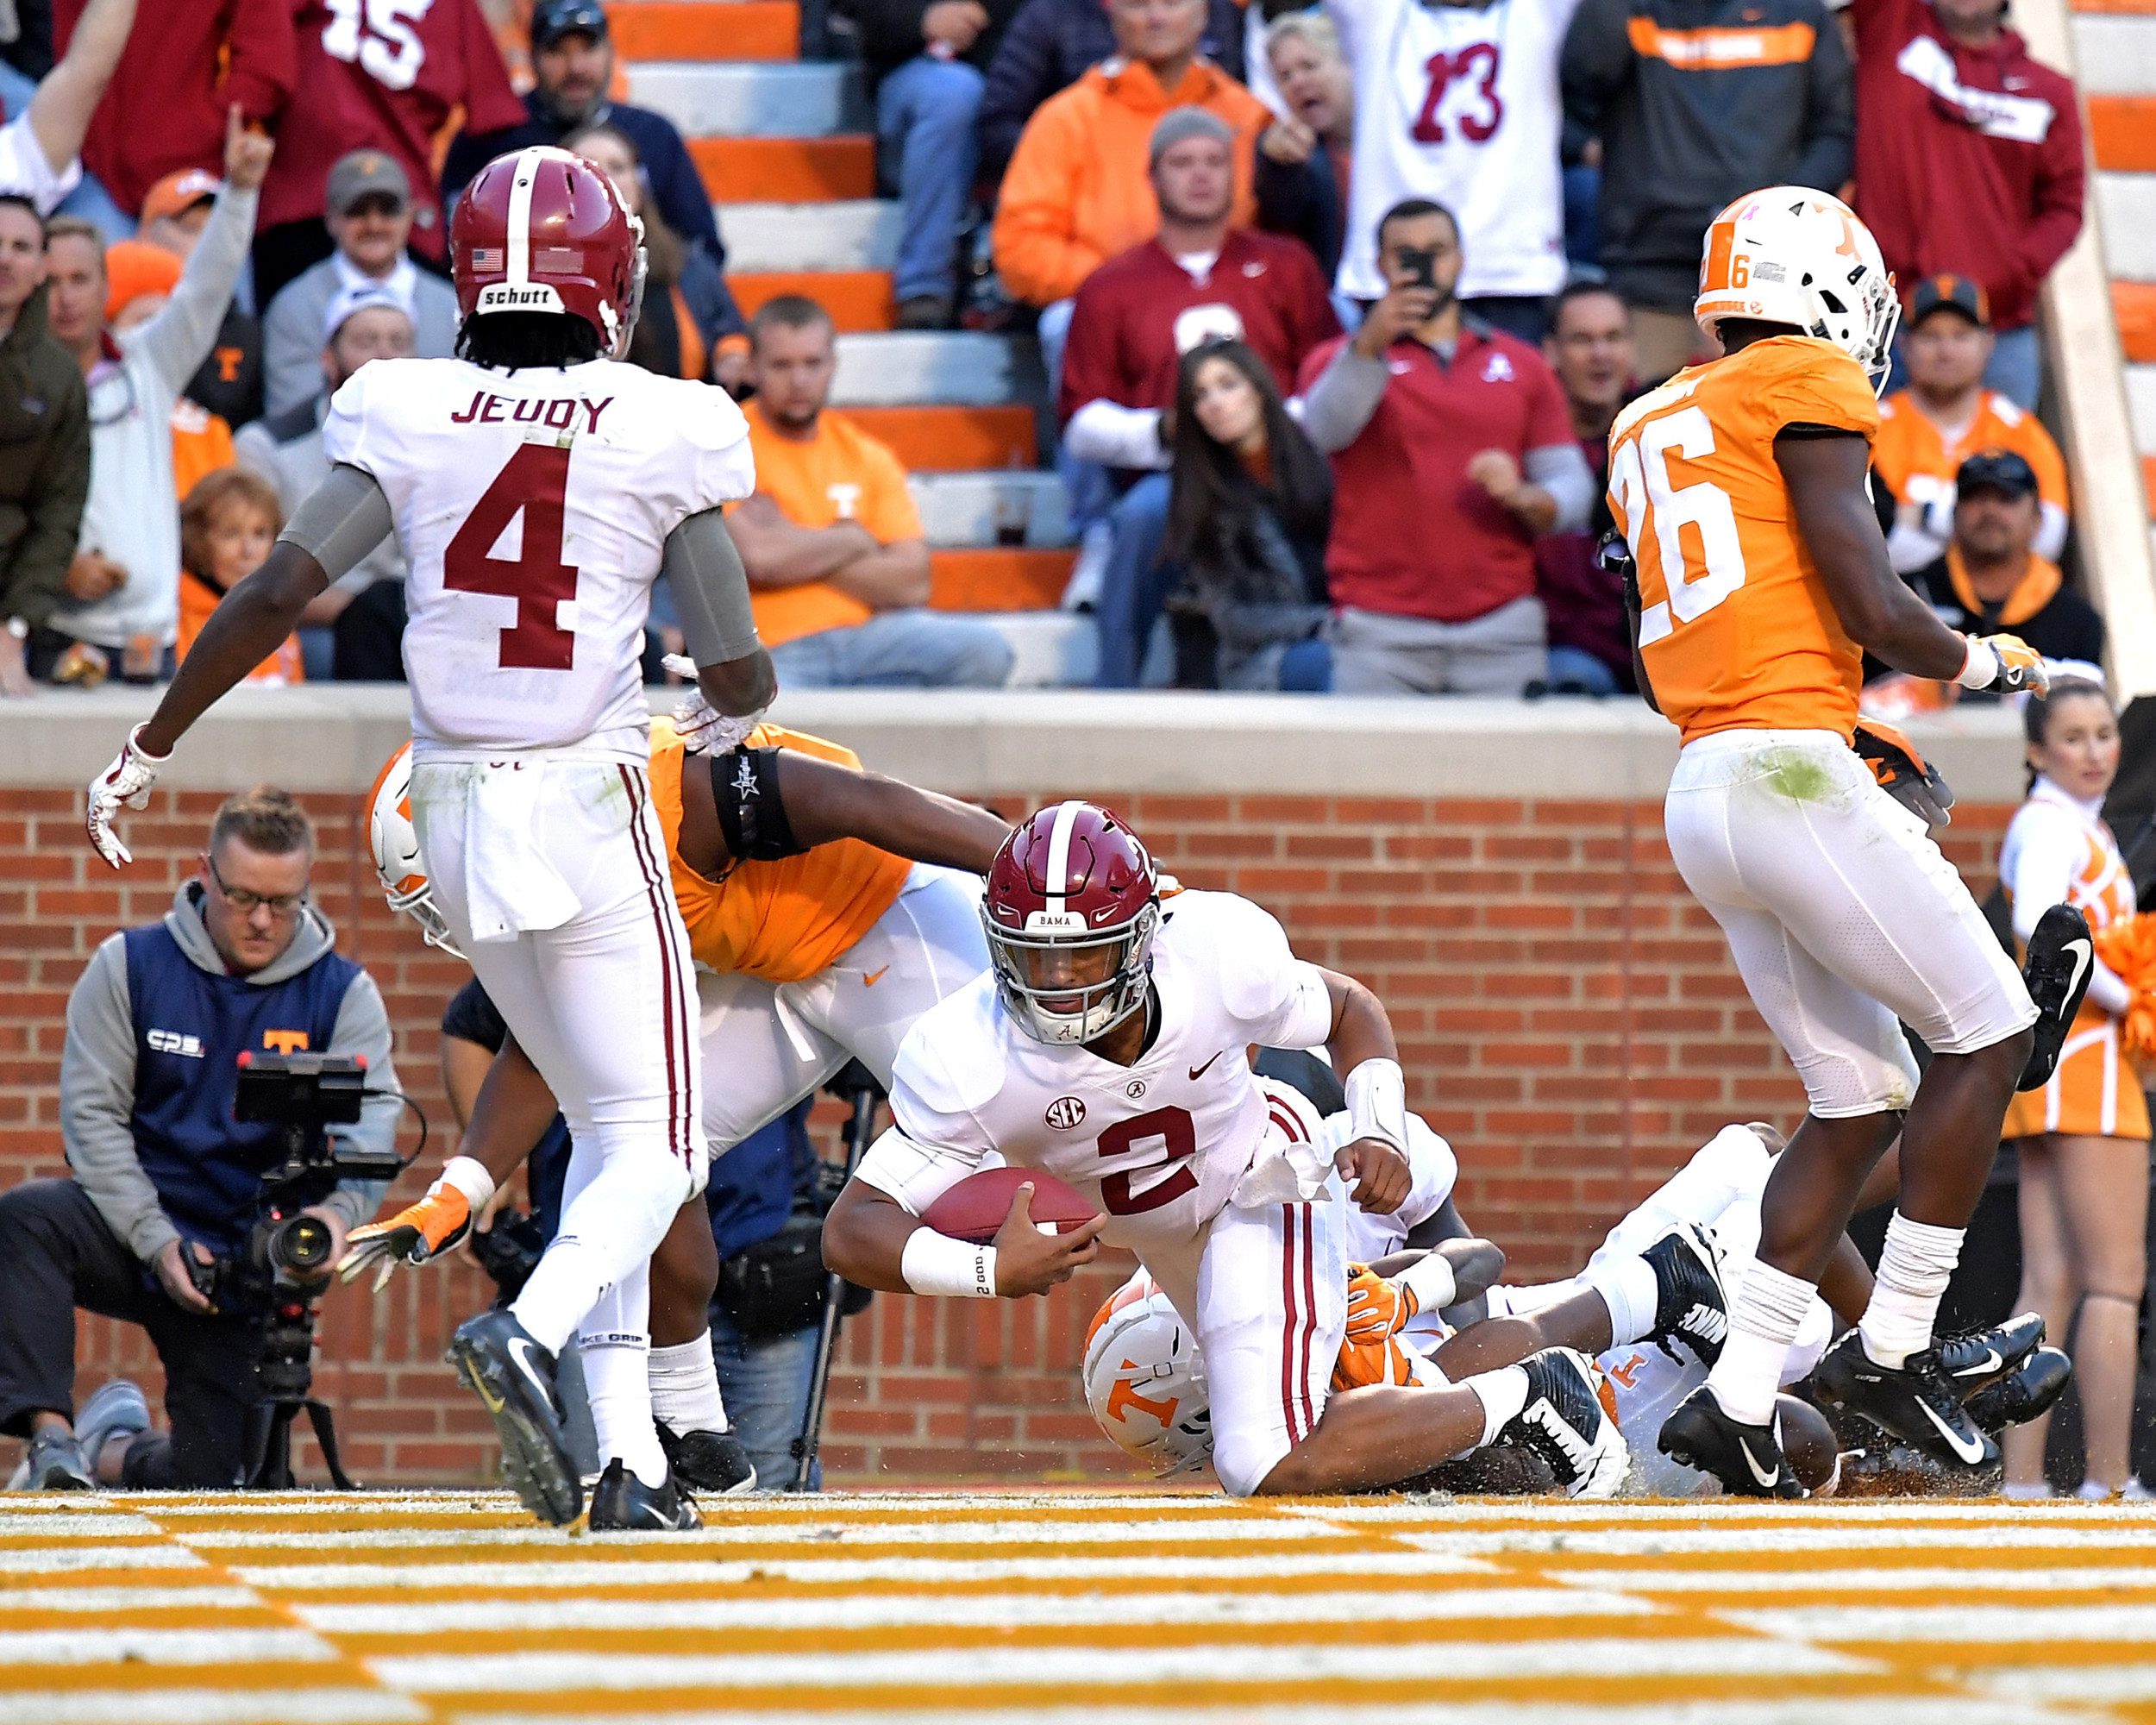 Alabama Crimson Tide quarterback Jalen Hurts (2) with a keeper for a touchdown in the third quarter of the Alabama at Tennessee NCAA football game on Saturday, Oct. 20, 2018, at Neyland Stadium in Knoxville. Tenn. Alabama wins 58-21. (Photo by Lee Walls)